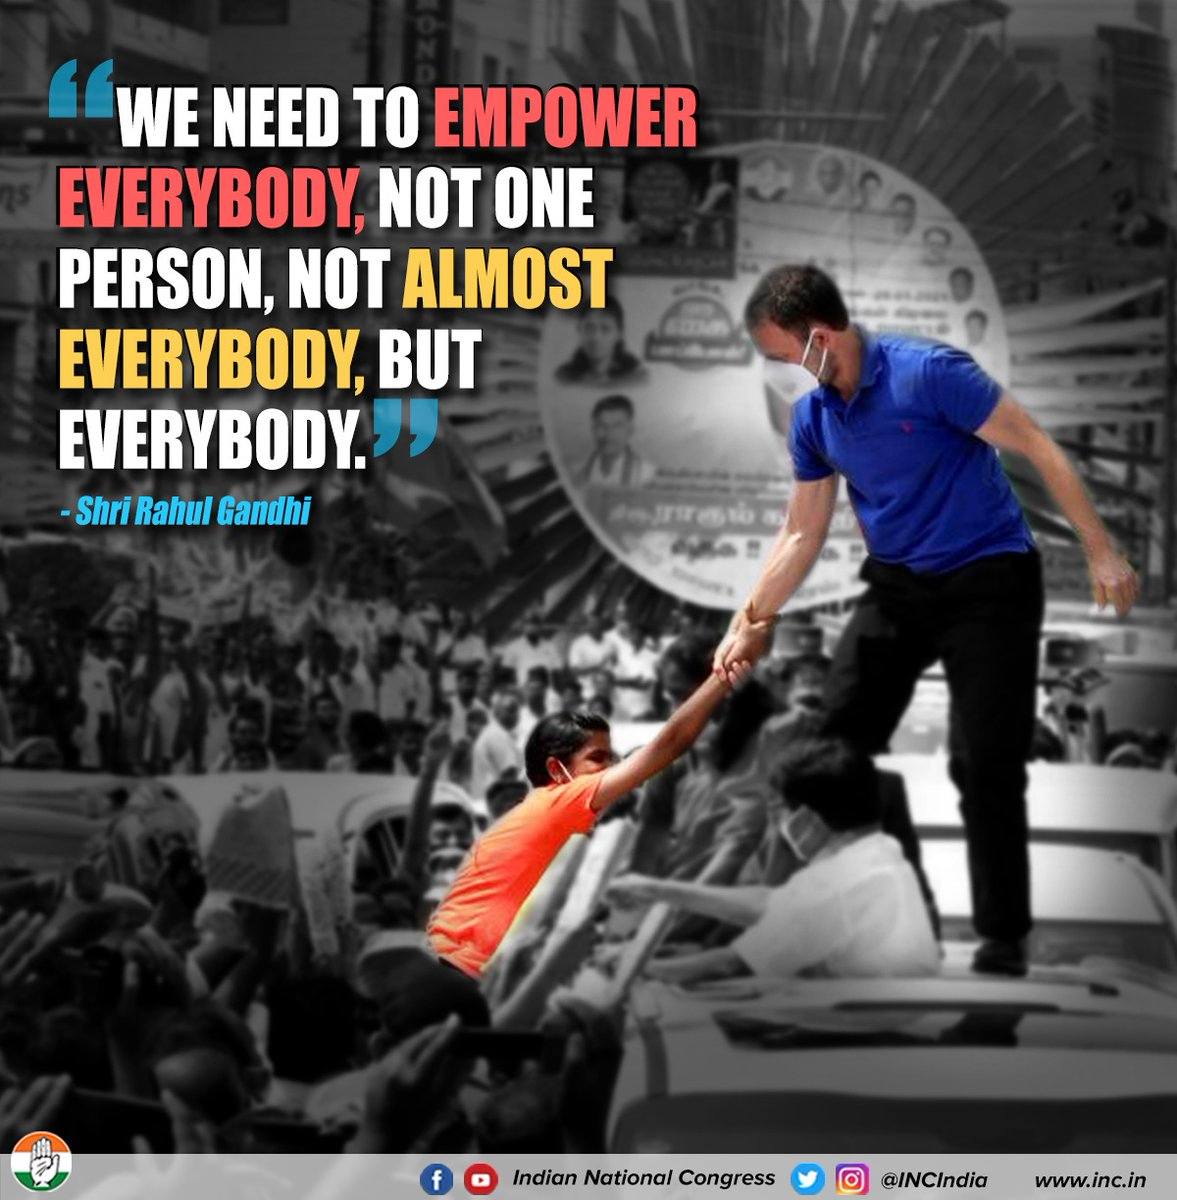 We will uplift, empower & unite every Indian.